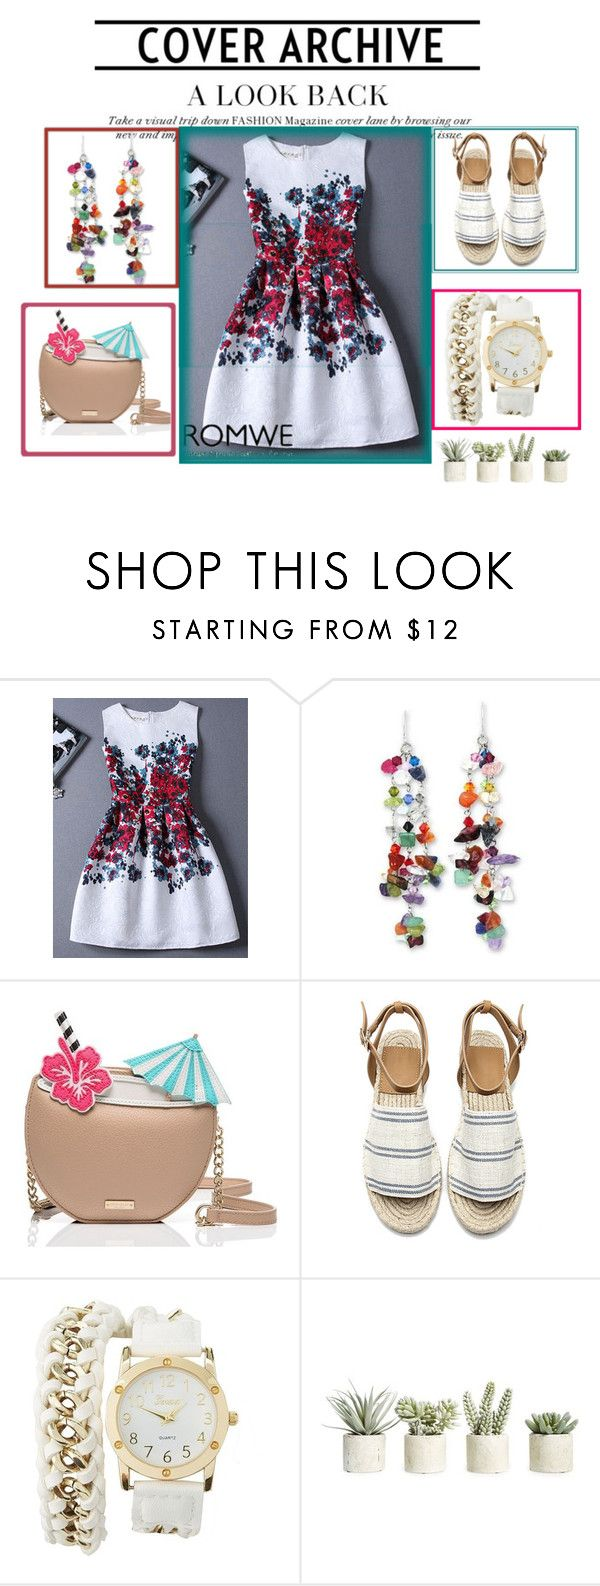 """""""Romwe"""" by loveliest-back ❤ liked on Polyvore featuring NOVICA, Kate Spade, Charlotte Russe and Allstate Floral"""